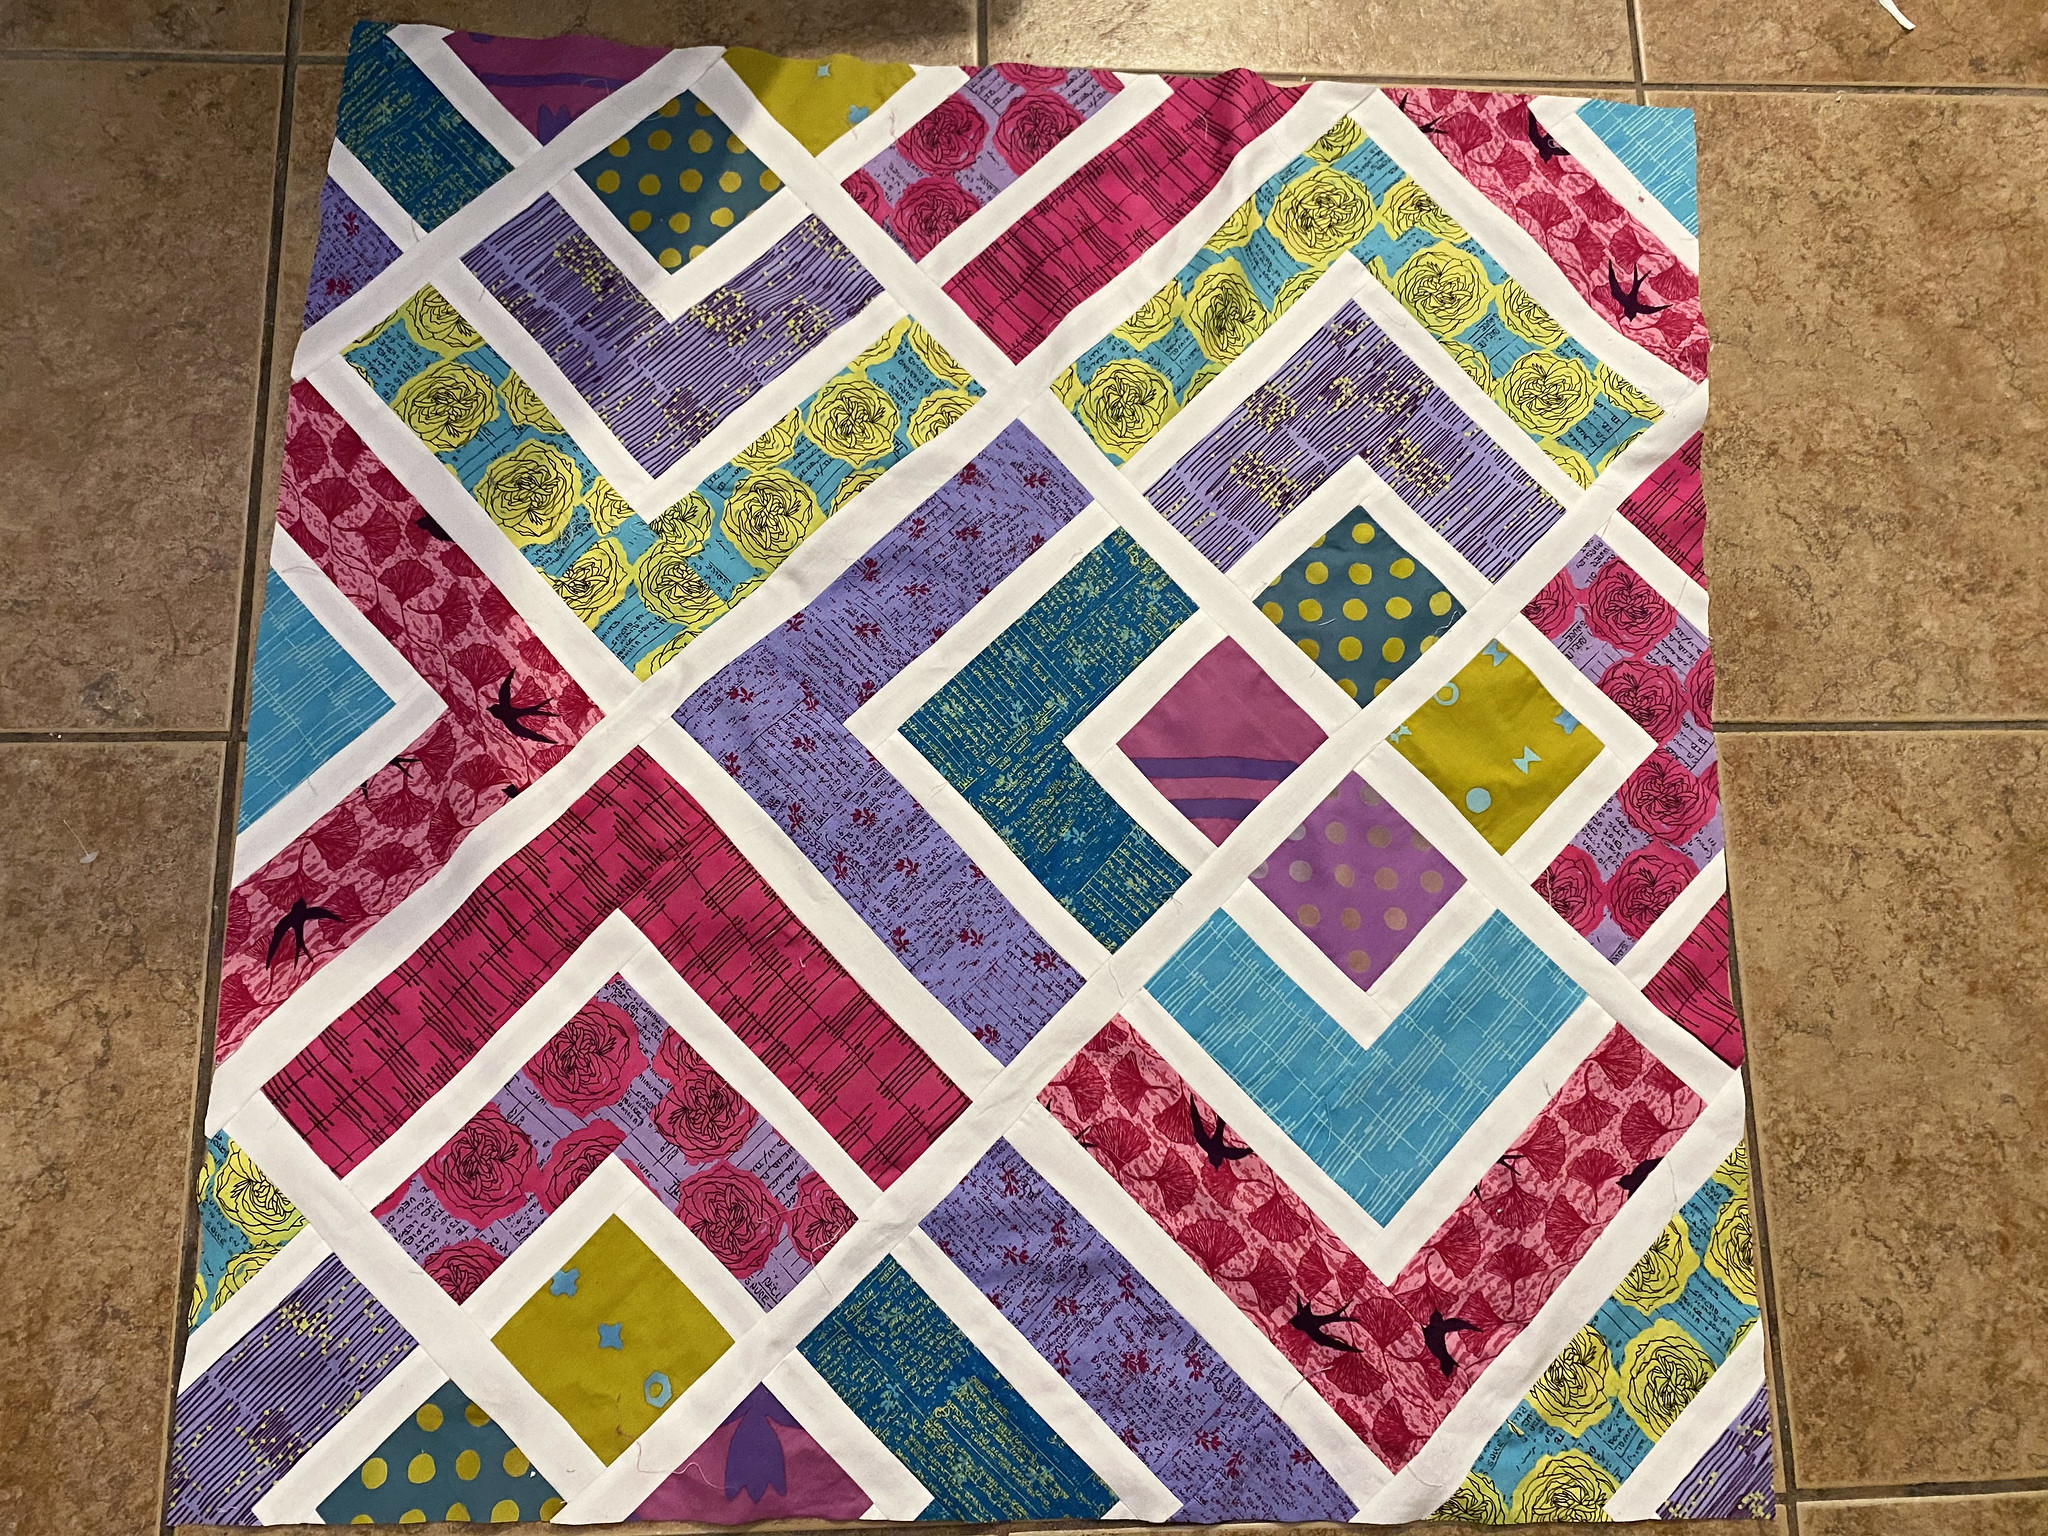 Patti's Penny Quilt